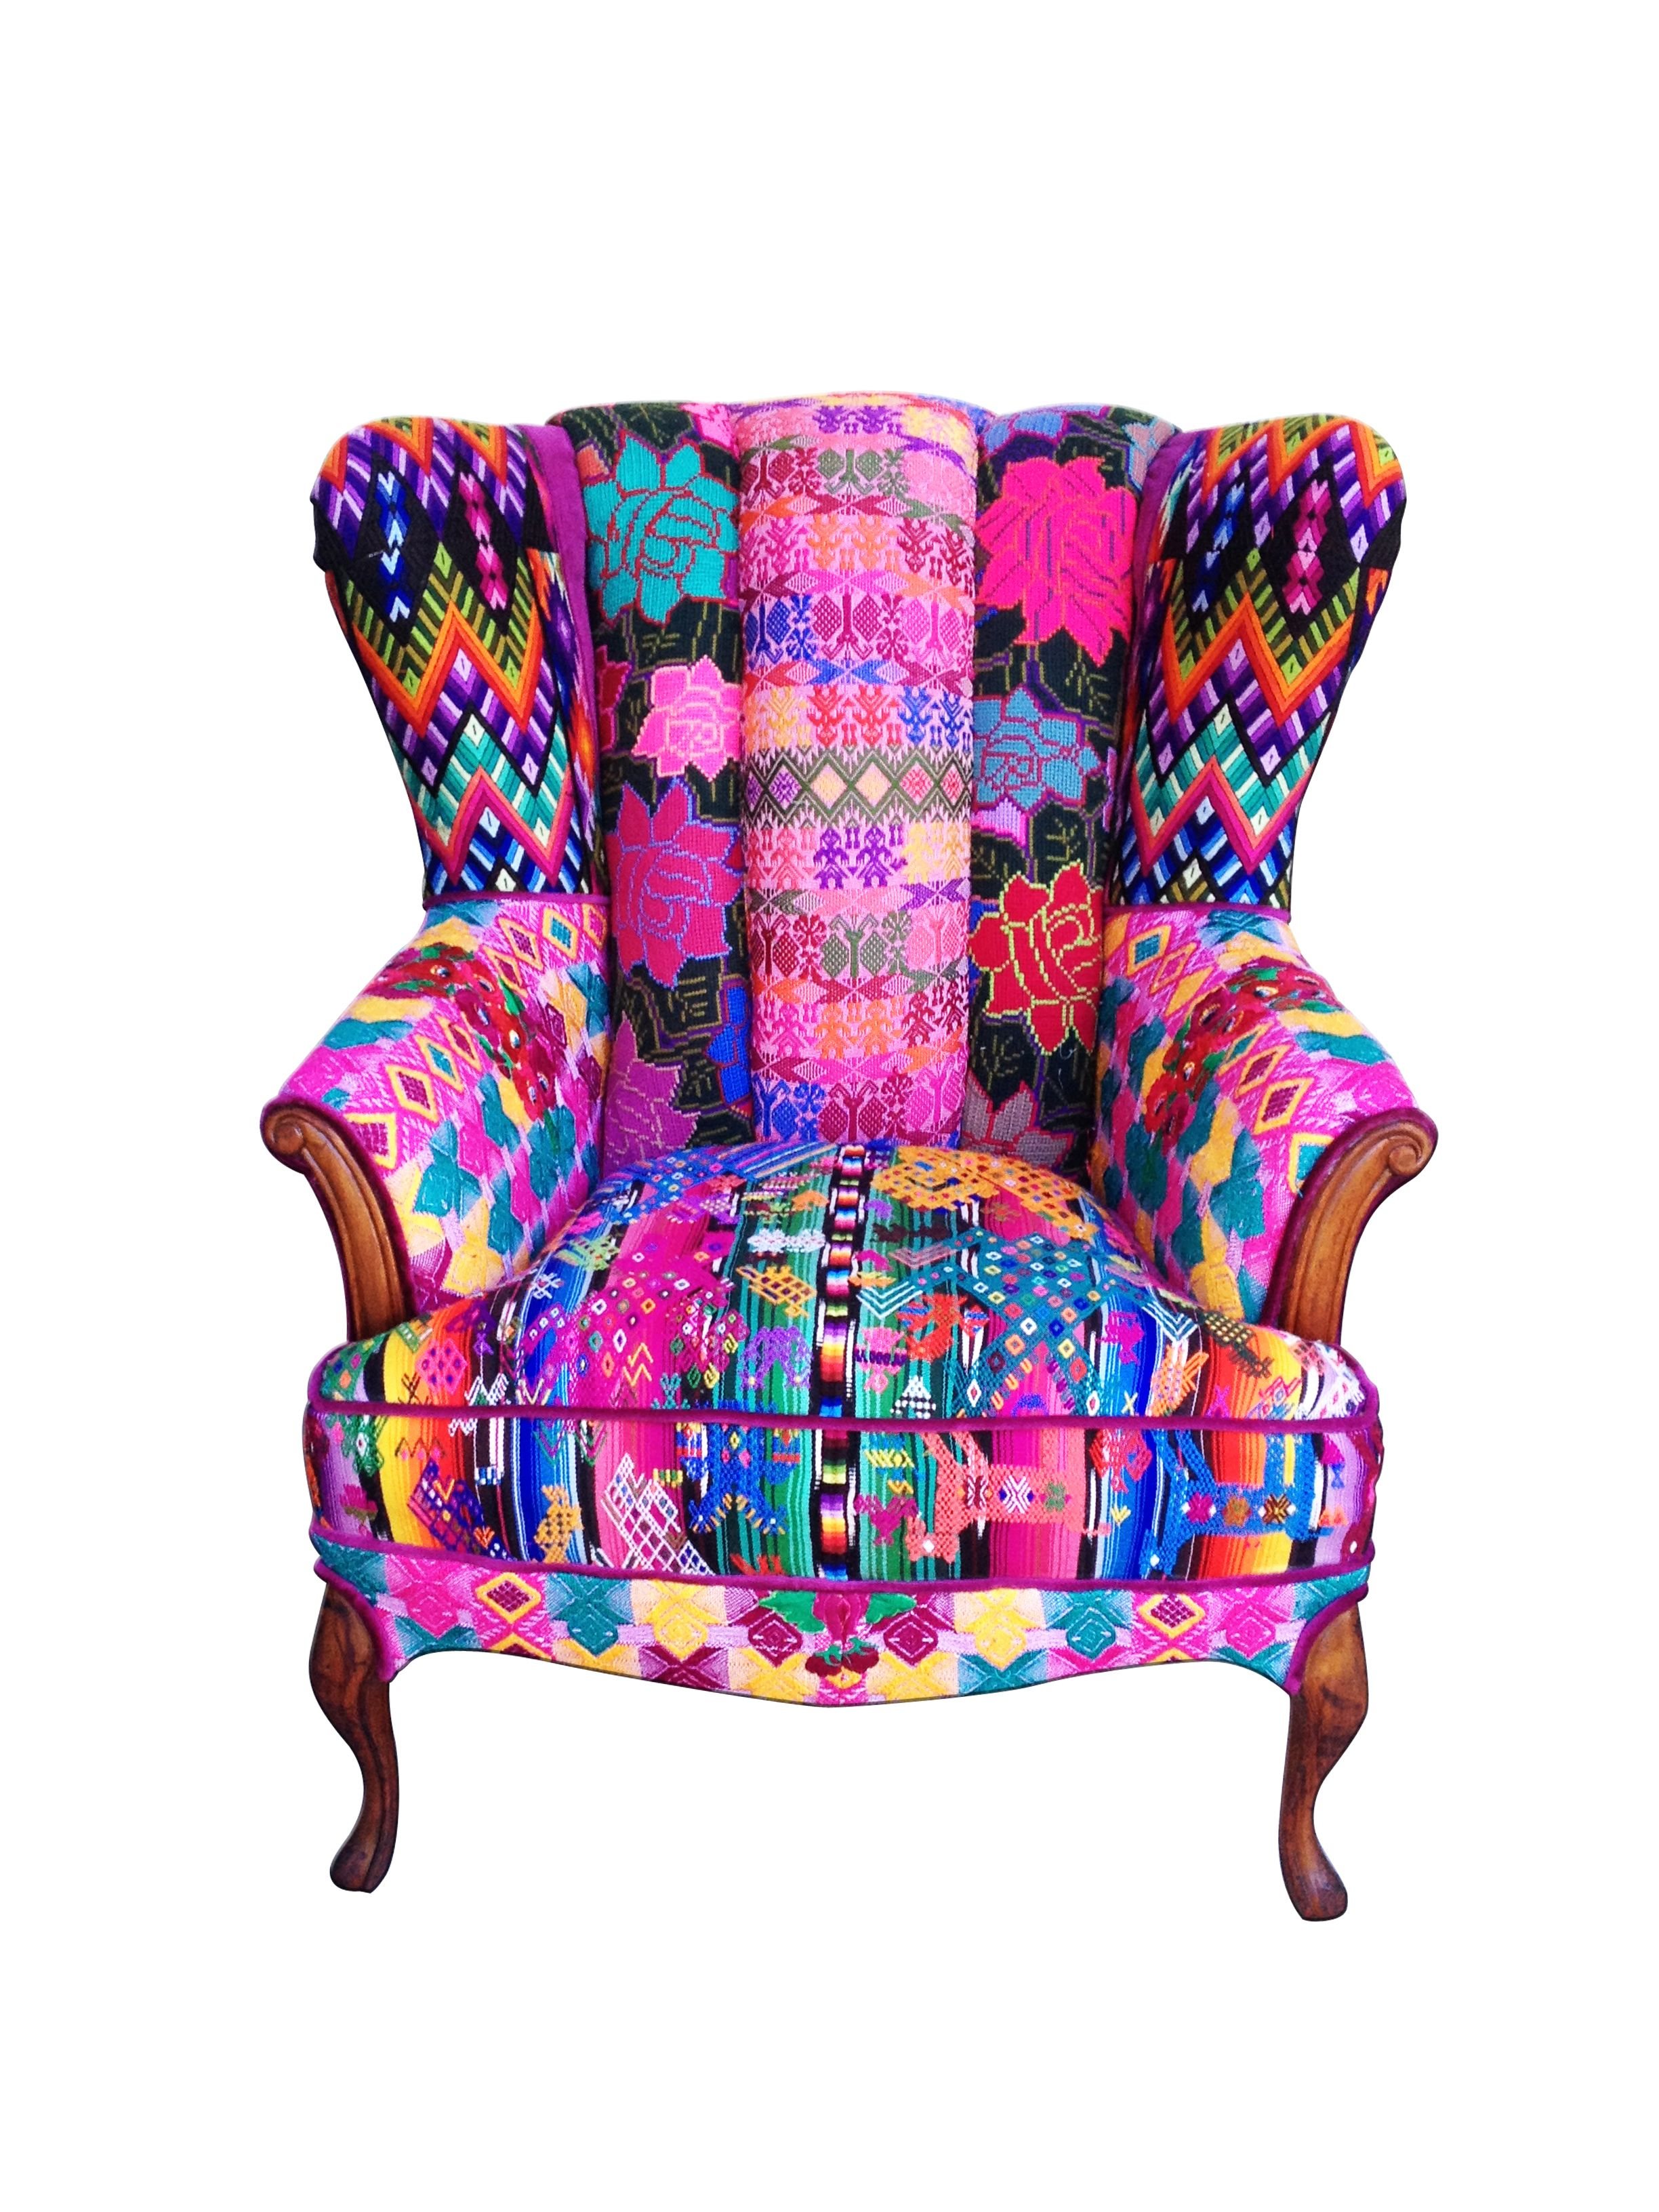 Stühle Esszimmer Patchwork Iris Chair By Folk Project Home Office Pinterest Bunte Möbel